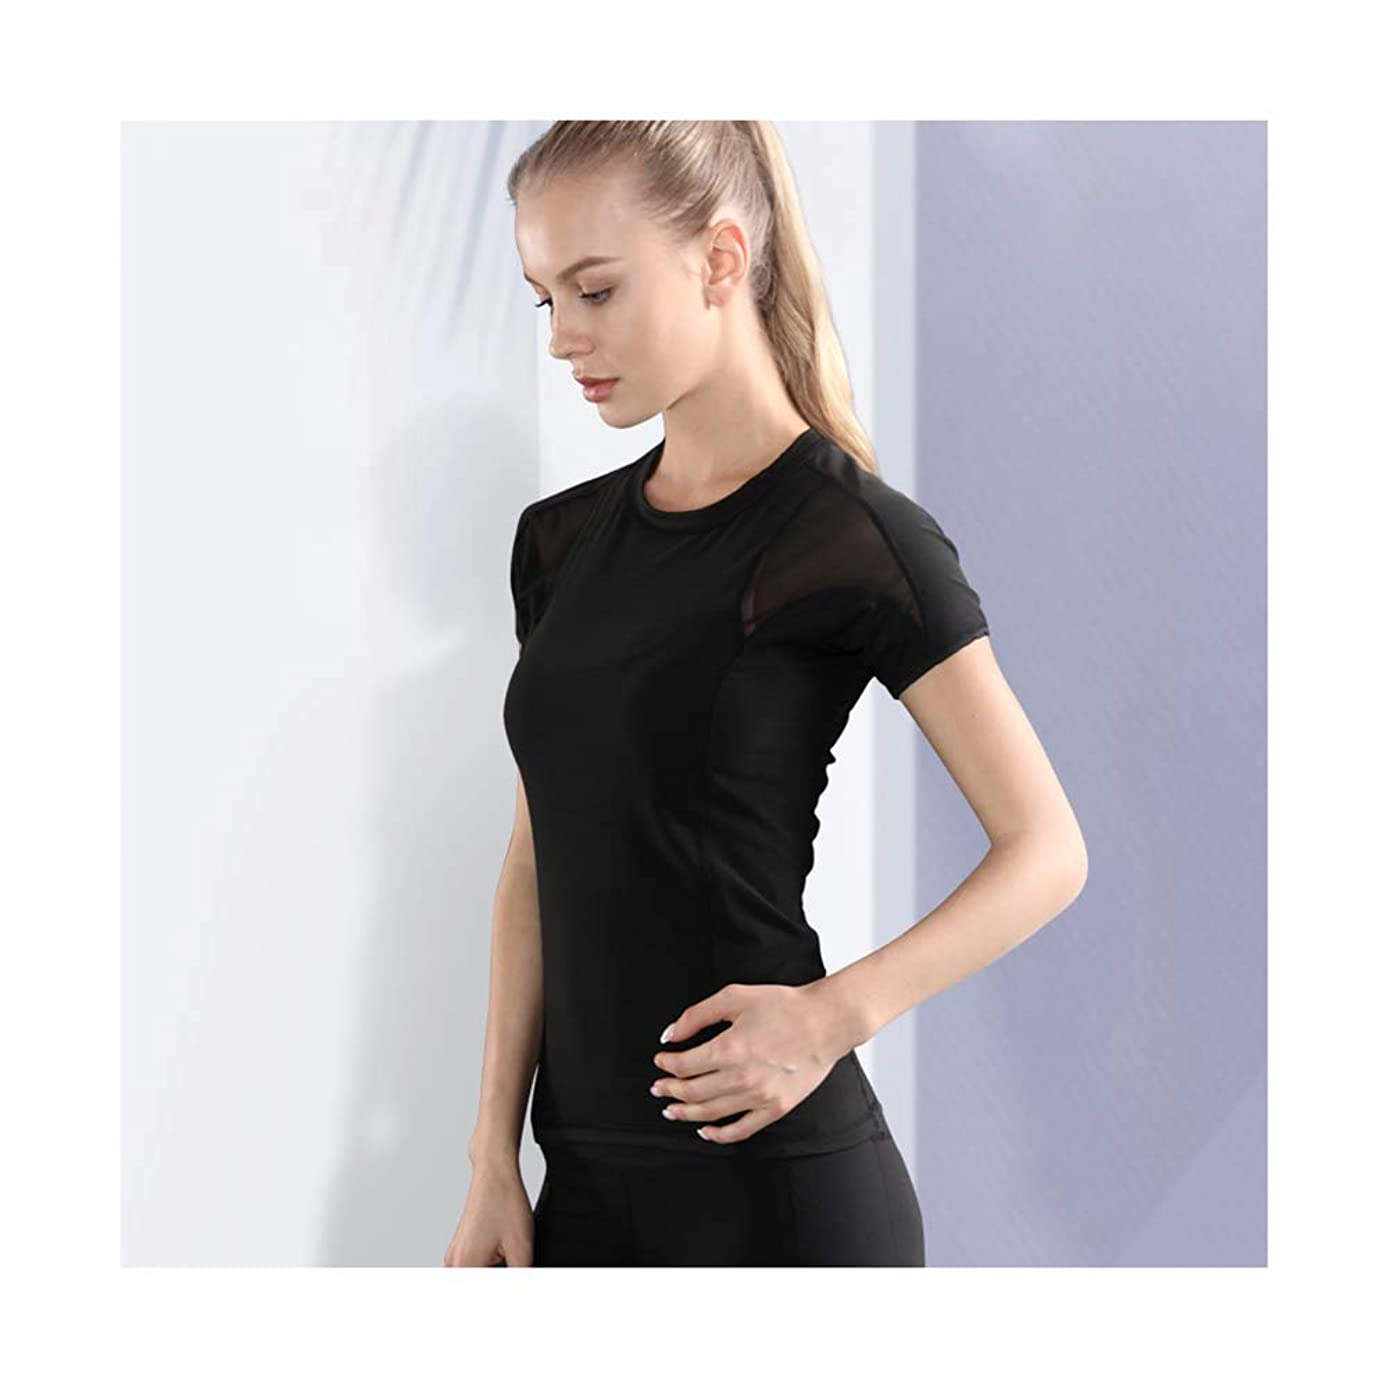 Sports Quick-Drying T-Shirt Yoga Clothes Fitness Clothes Women Sports Tops Black